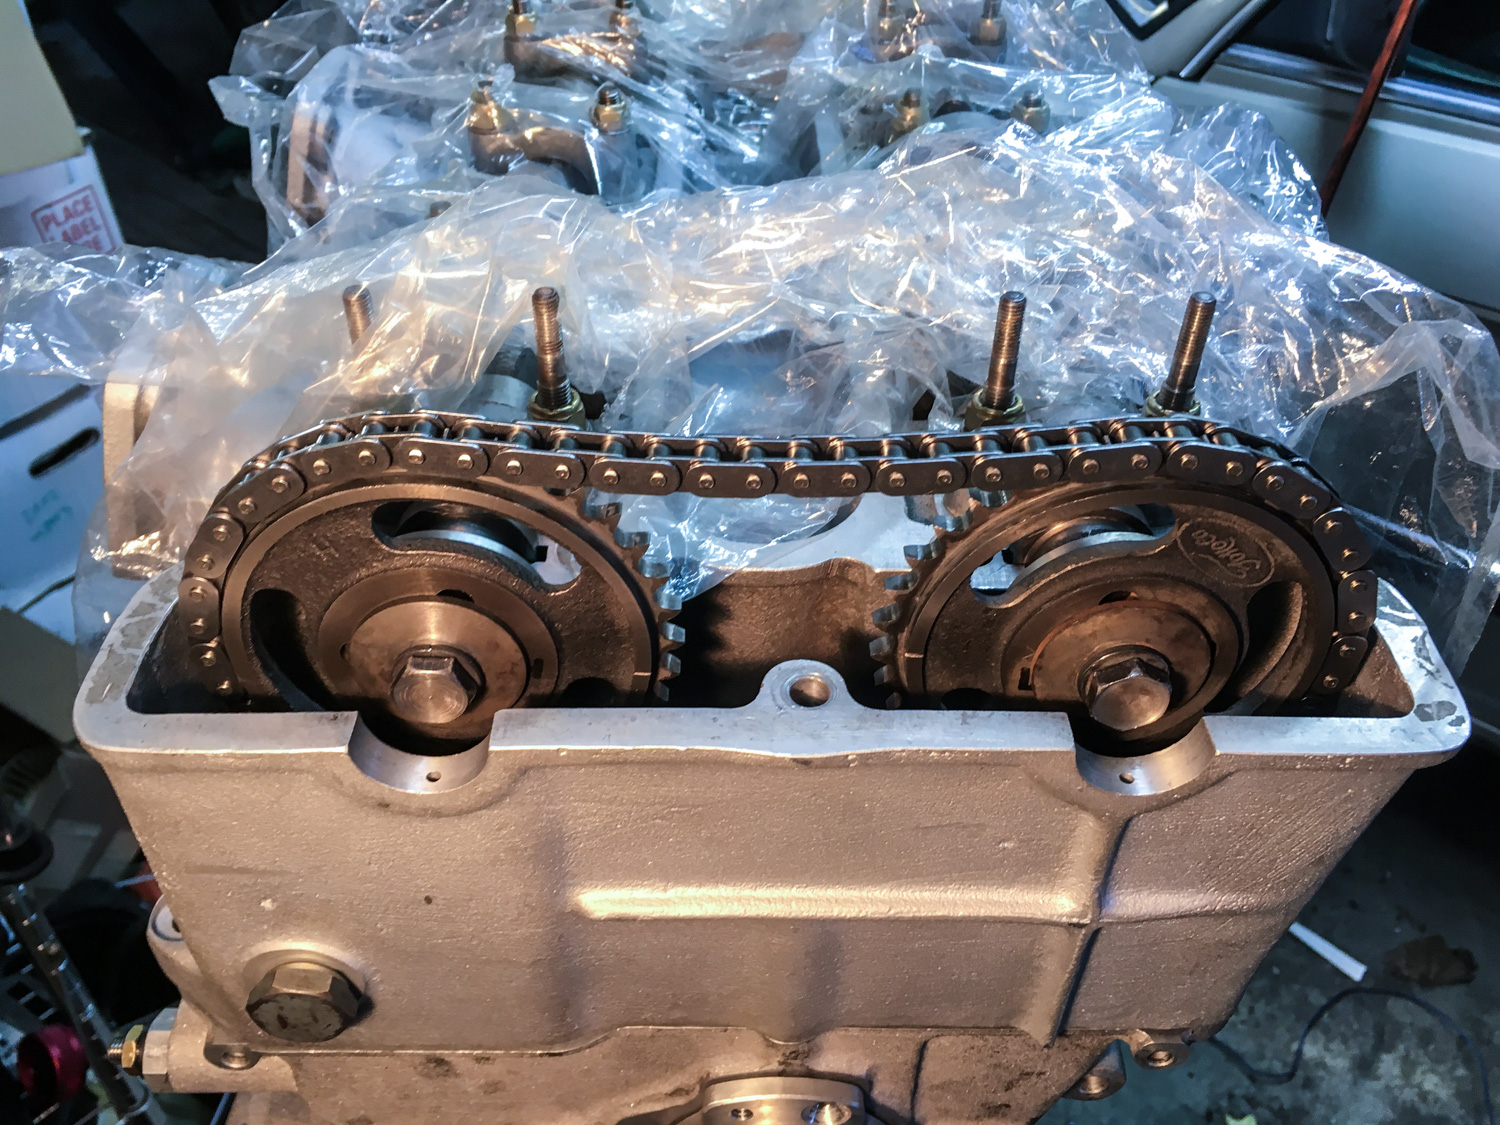 The fully-assembled head with the cam gears and timing chain in place.